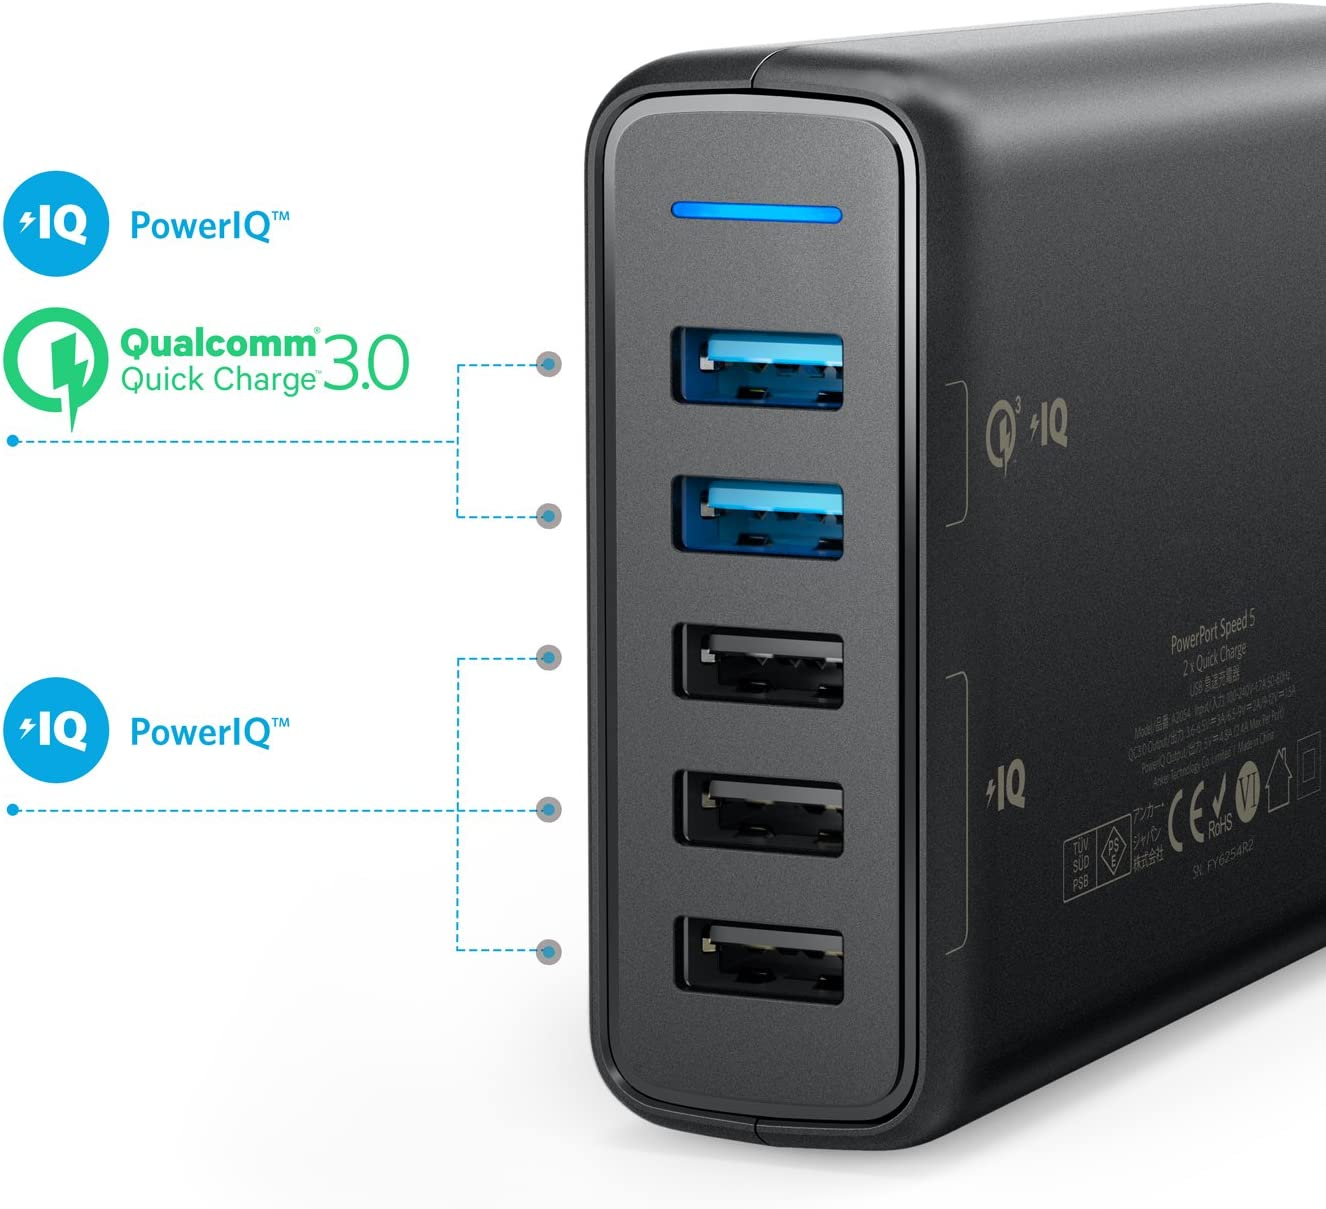 HTC and More Nexus Anker Quick Charge 3.0 63W 5-Port USB Wall Charger Note 8//7 and PowerIQ for iPhone XS//Max//XR//X//8//7//6s//Plus PowerPort Speed 5 for Galaxy S10//S9//S8//S7//S6//Edge//+ iPad LG